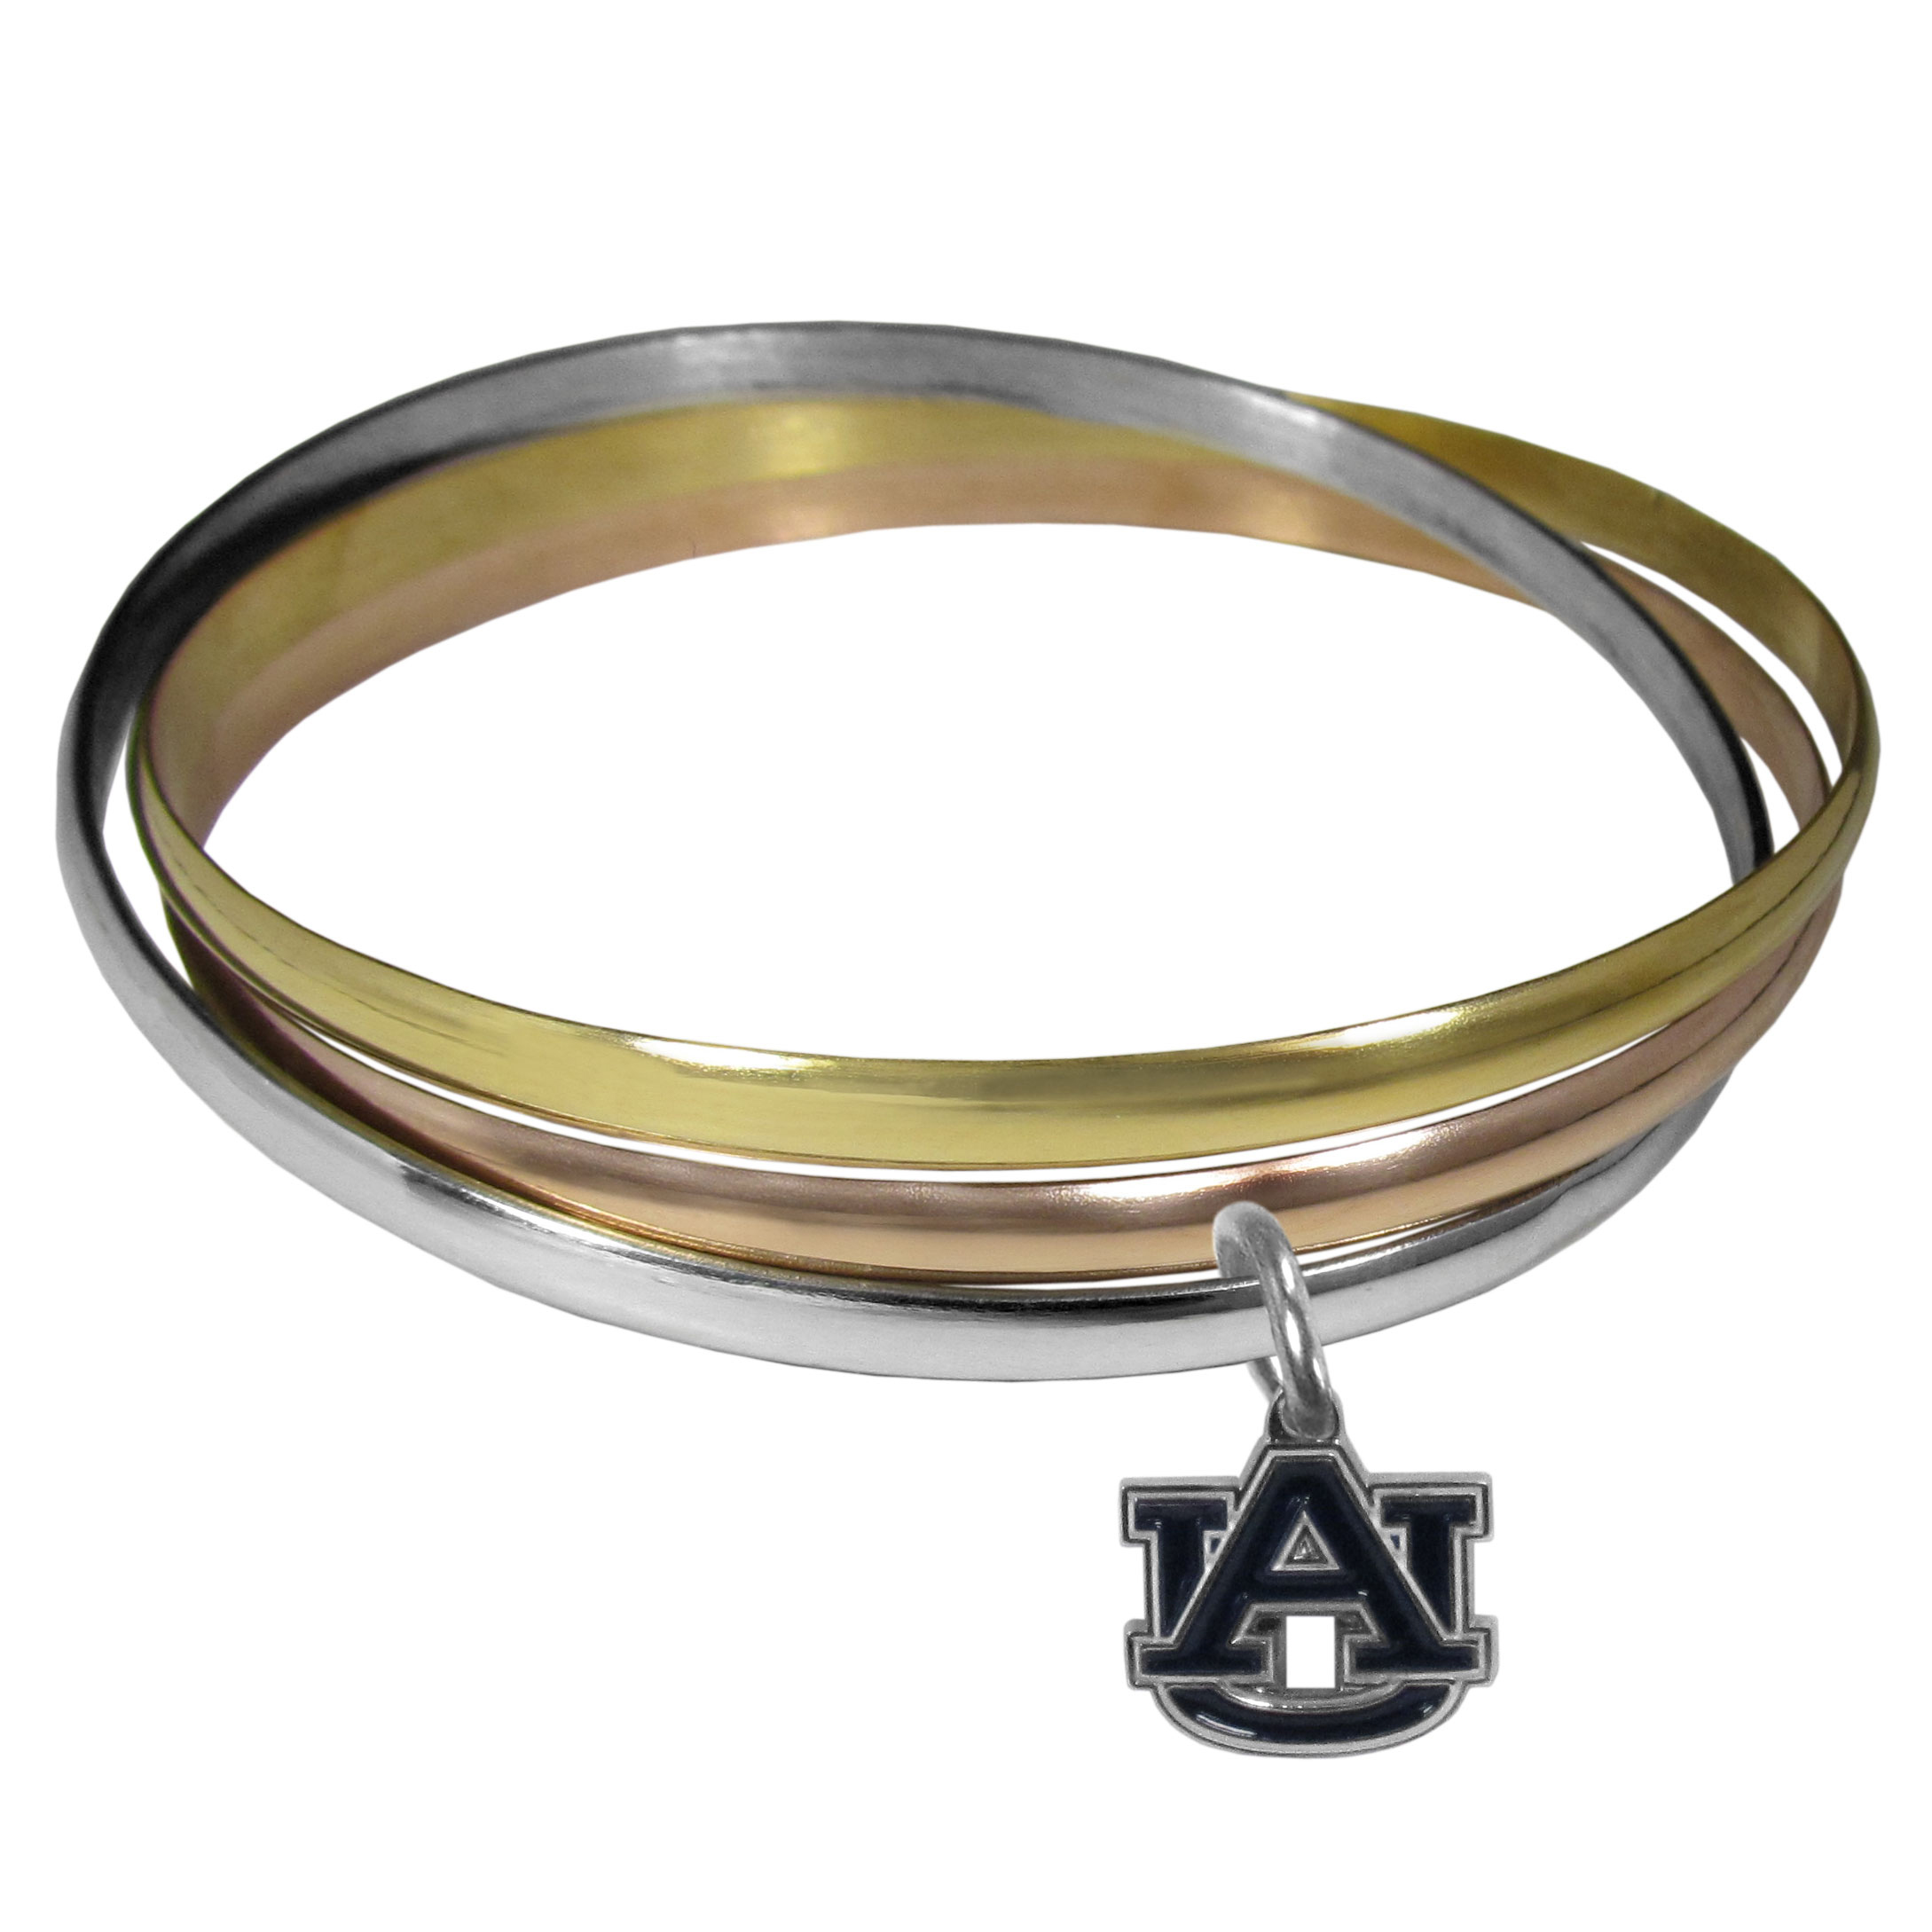 Auburn Tigers Tri-color Bangle Bracelet - These beautiful bangles come in a interlocking style and feature a fully cast Auburn Tigers charm with enameled team colors. The bracelet has a silver toned bangle, gold tone bangle and brass toned bangle.